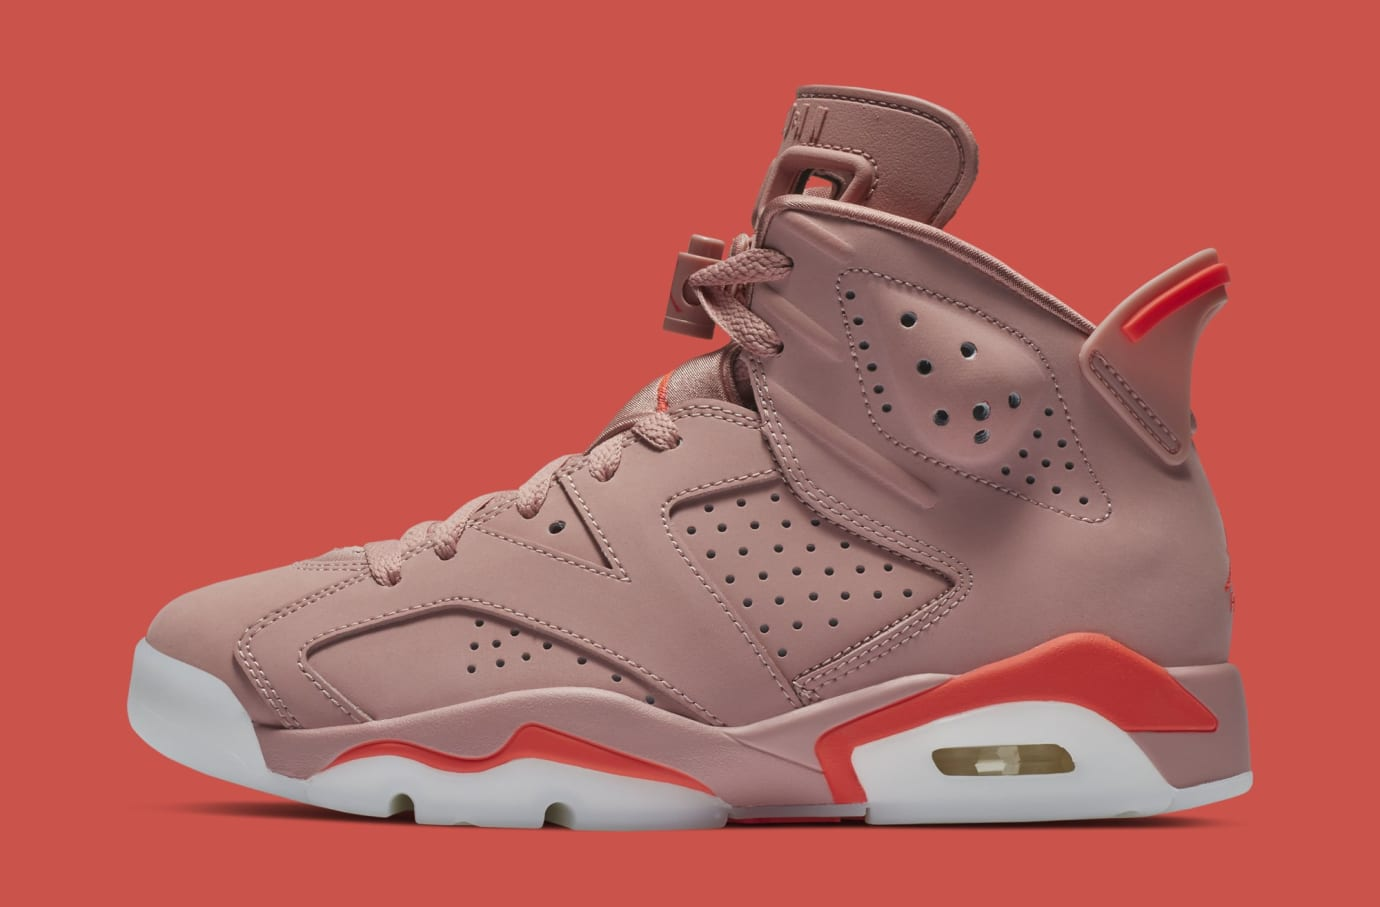 Aleali May x Air Jordan 6 'Rust Pink/Bright Crimson' CI0550-600 (Lateral)